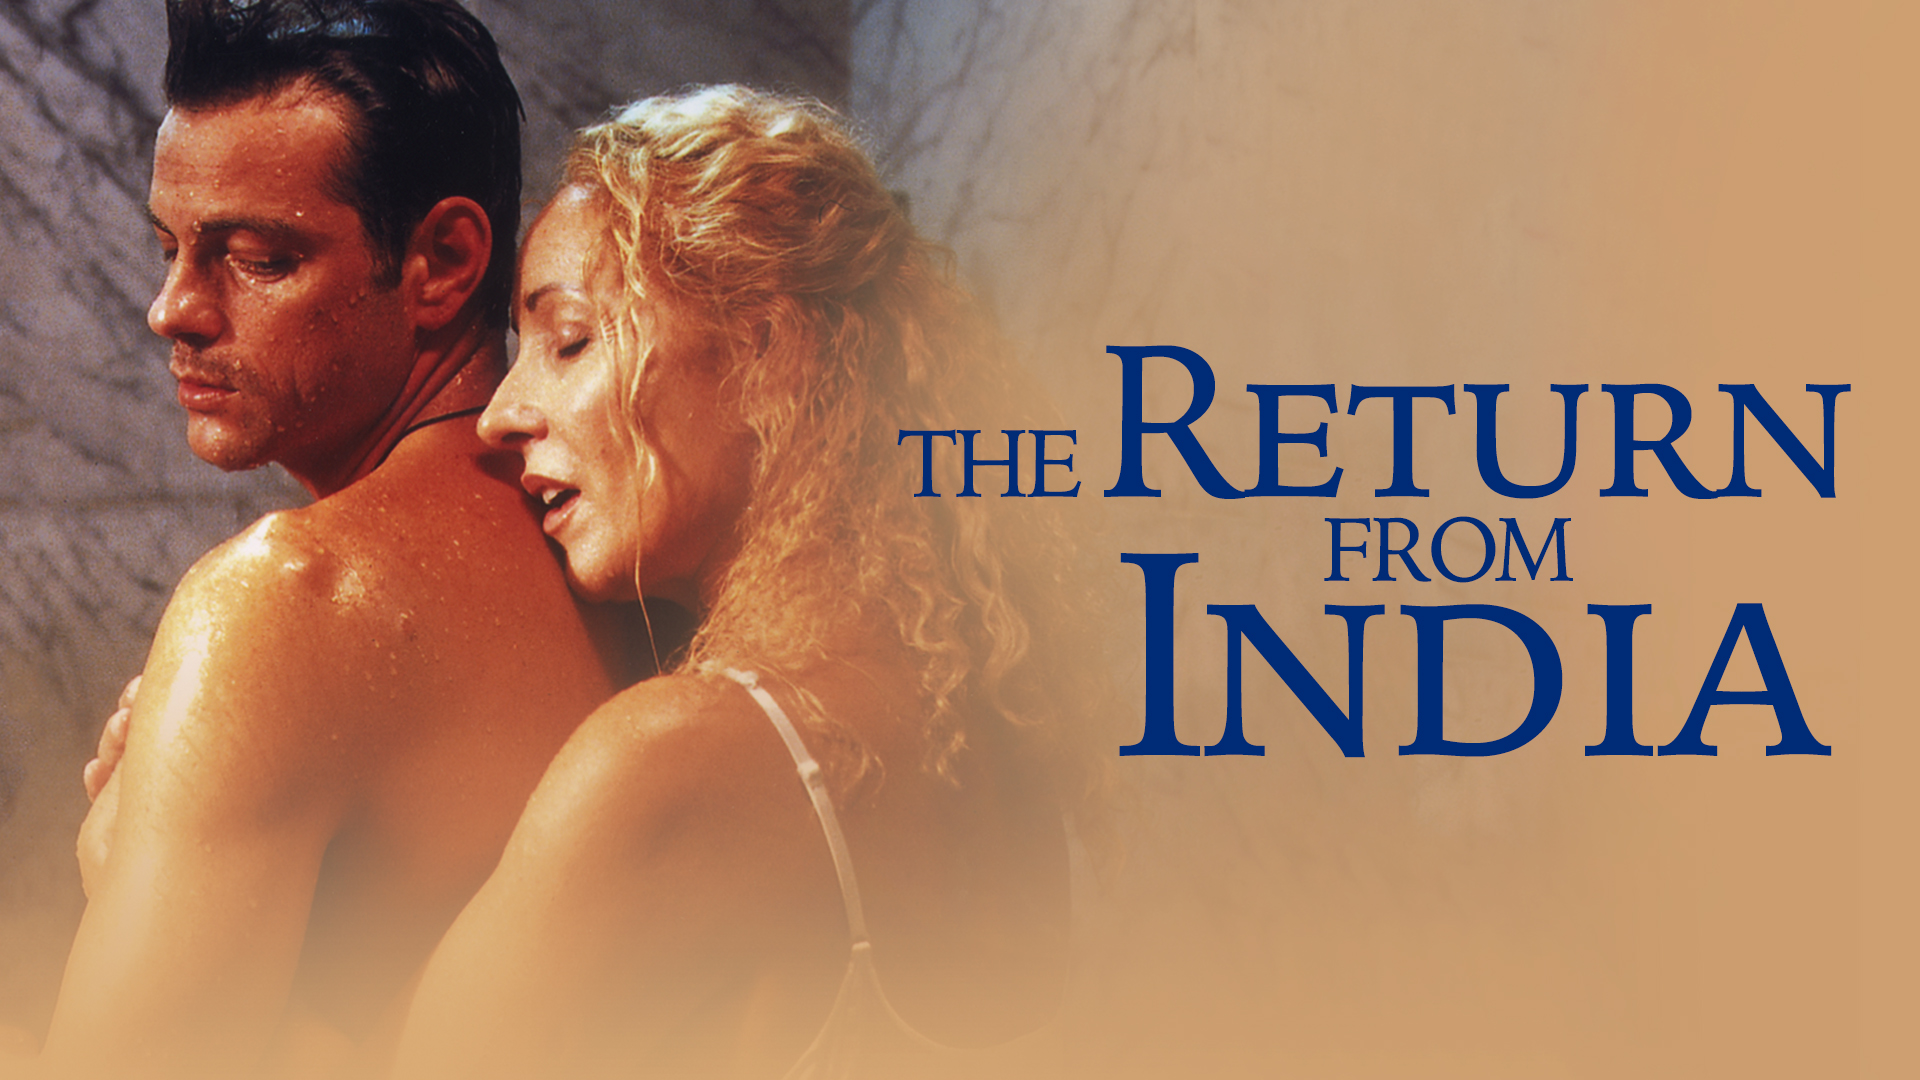 The Return from India